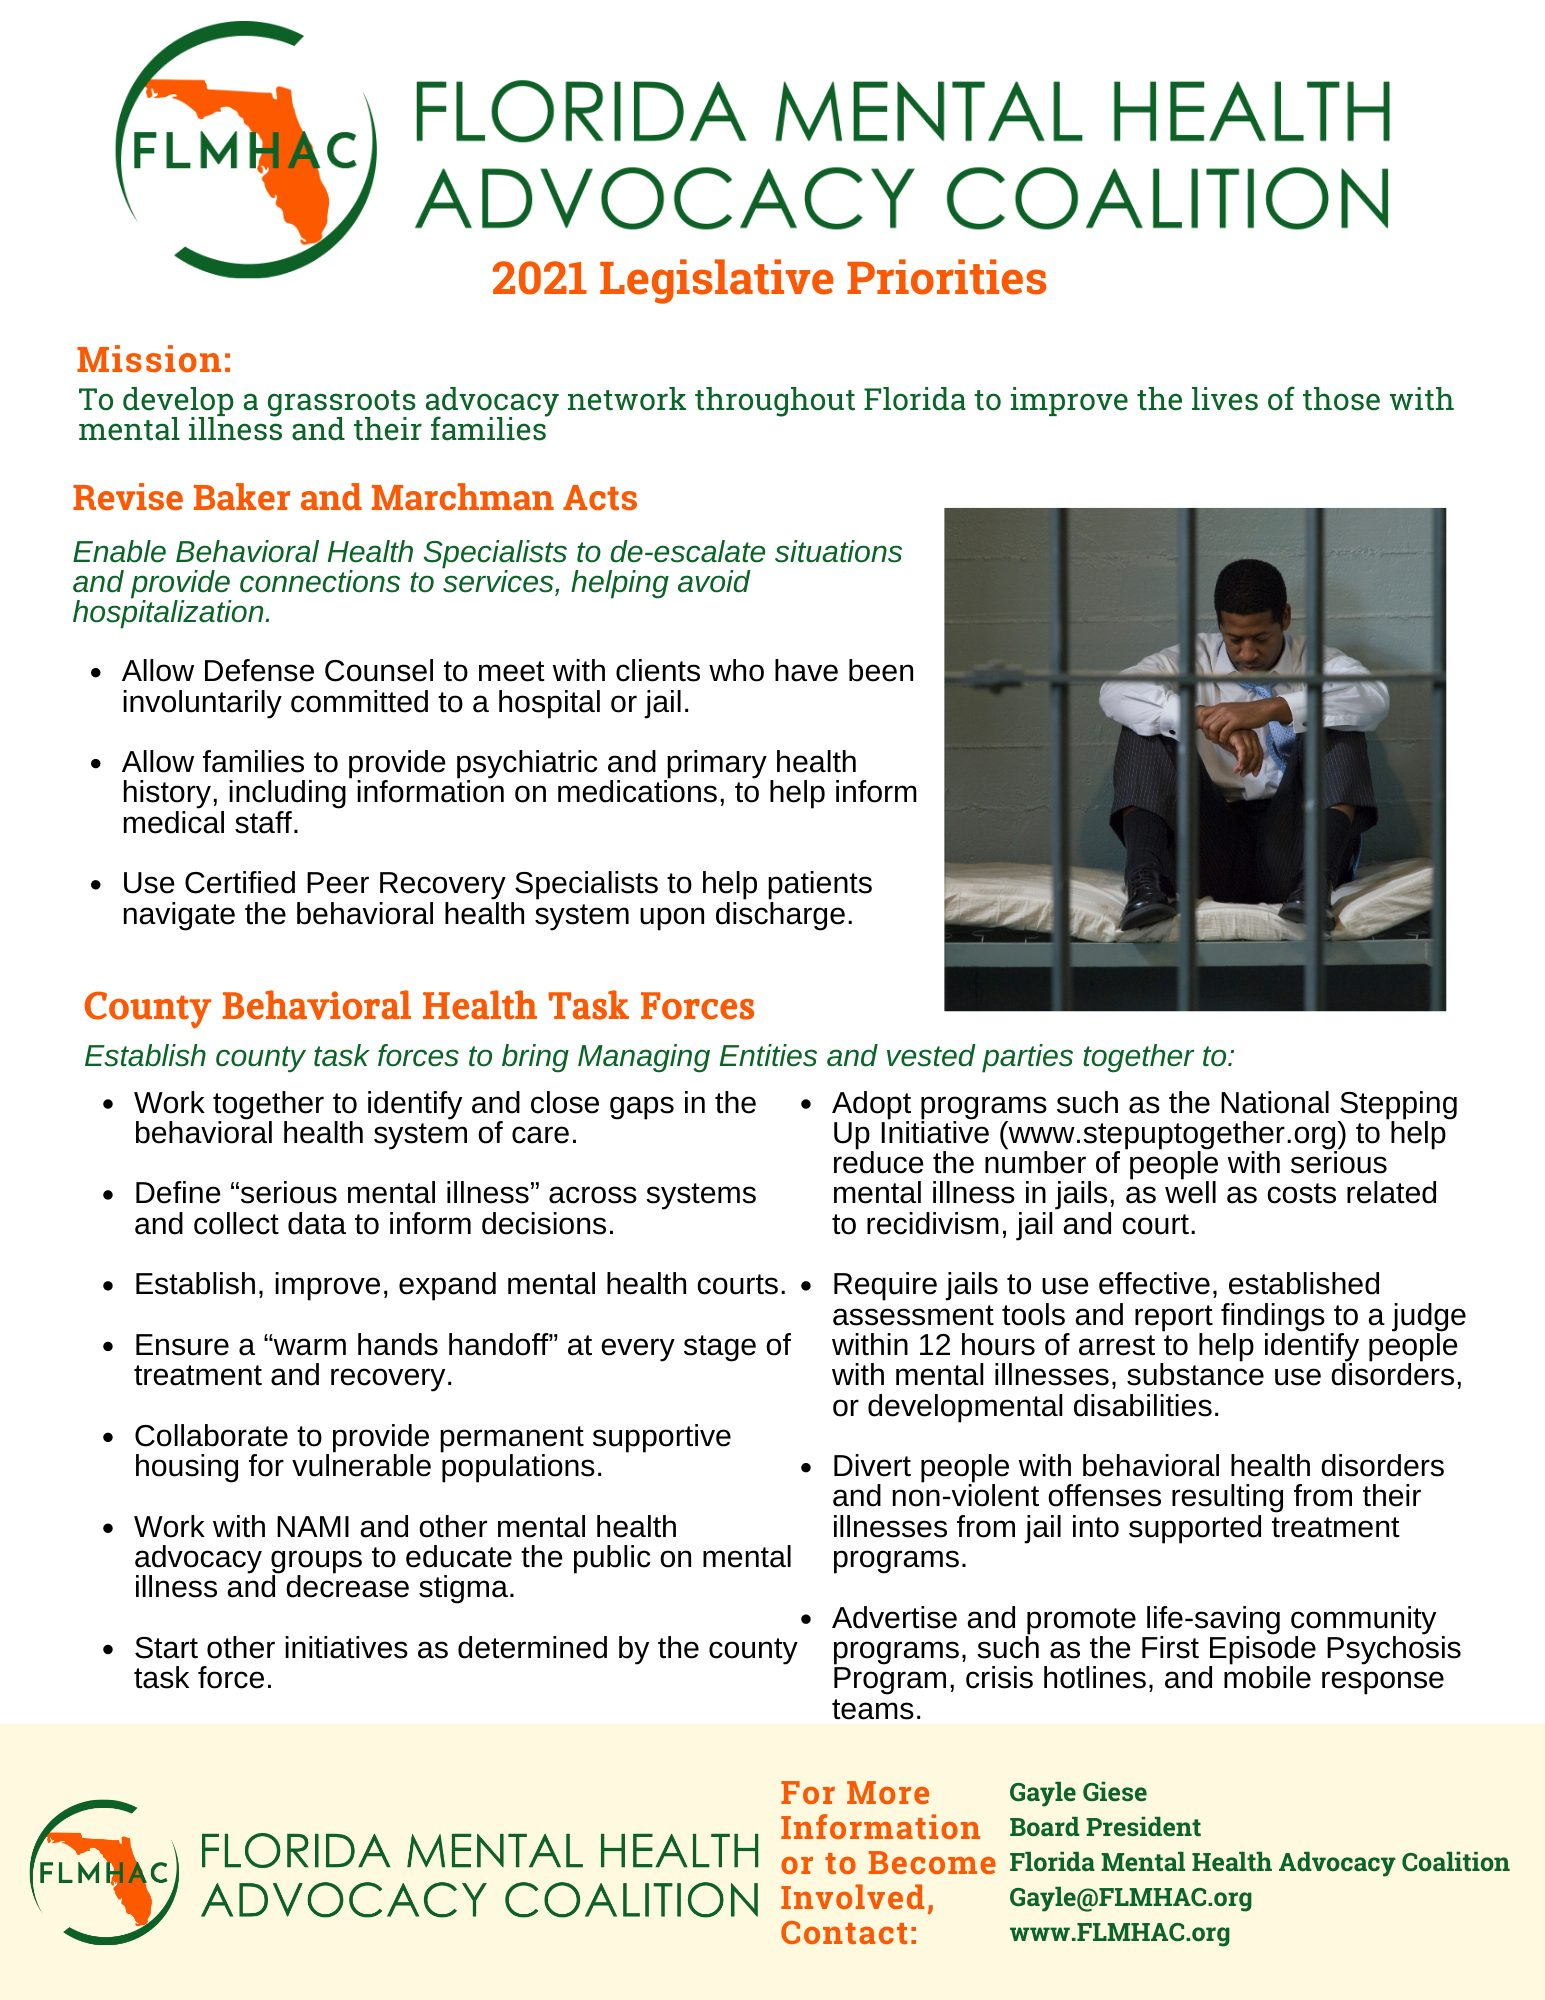 FLMHAC-flyer-2021-baker-marchman-County-task-forces-1-page-2